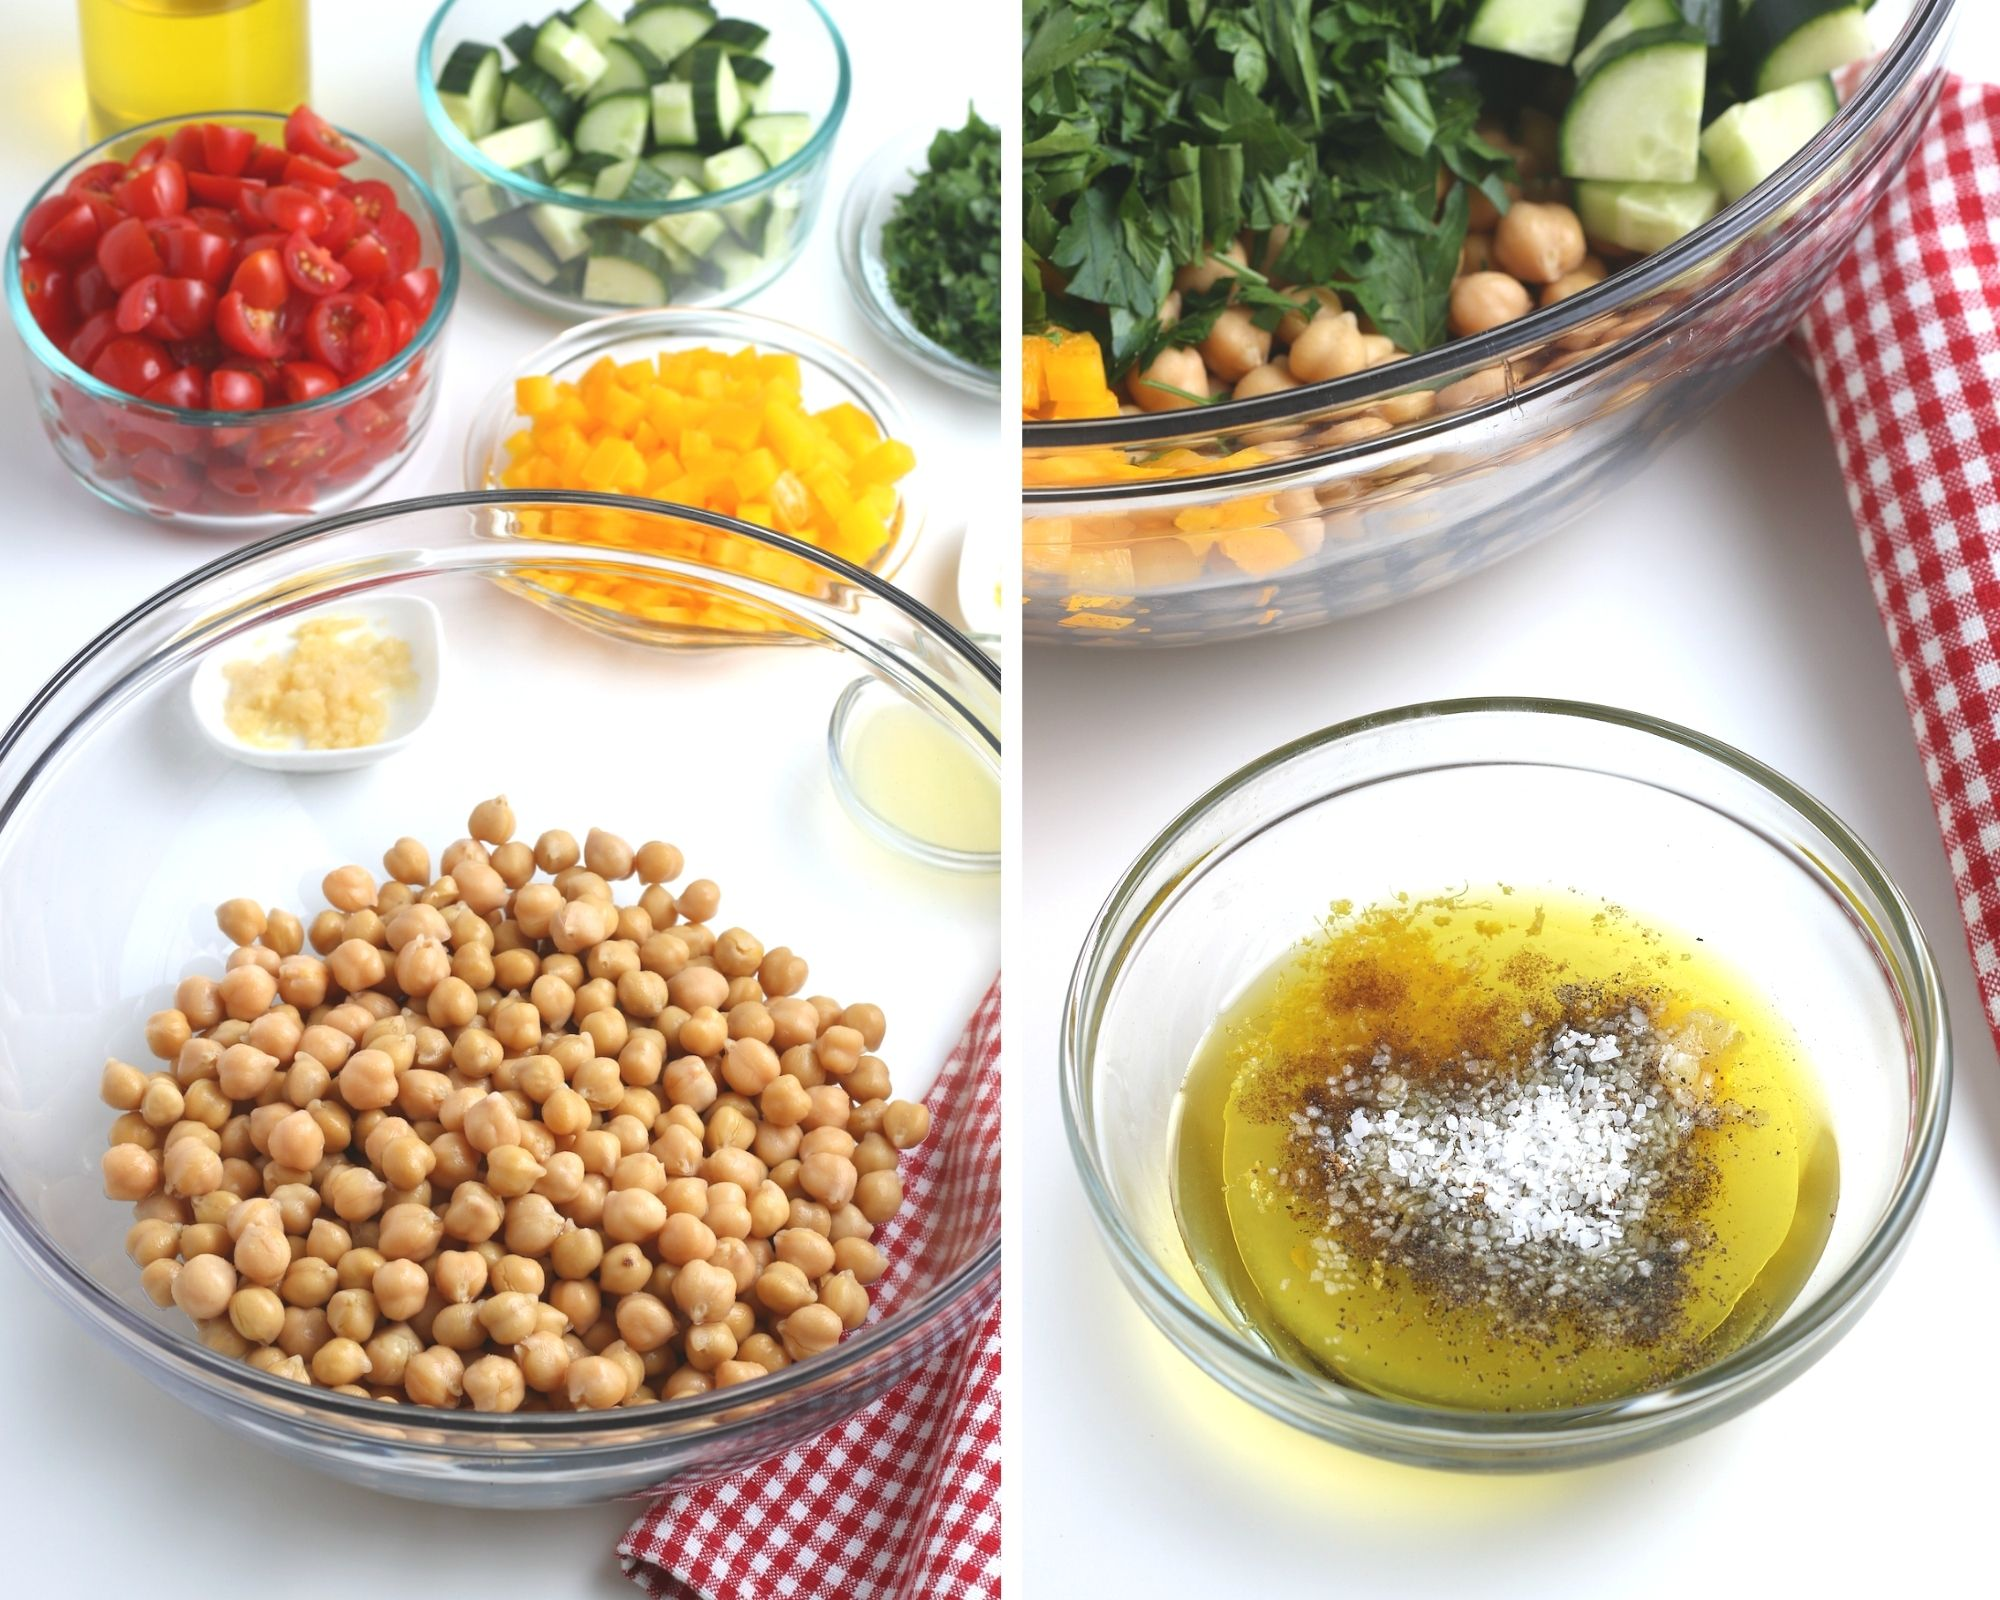 ingredients for easy chickpea salad recipe